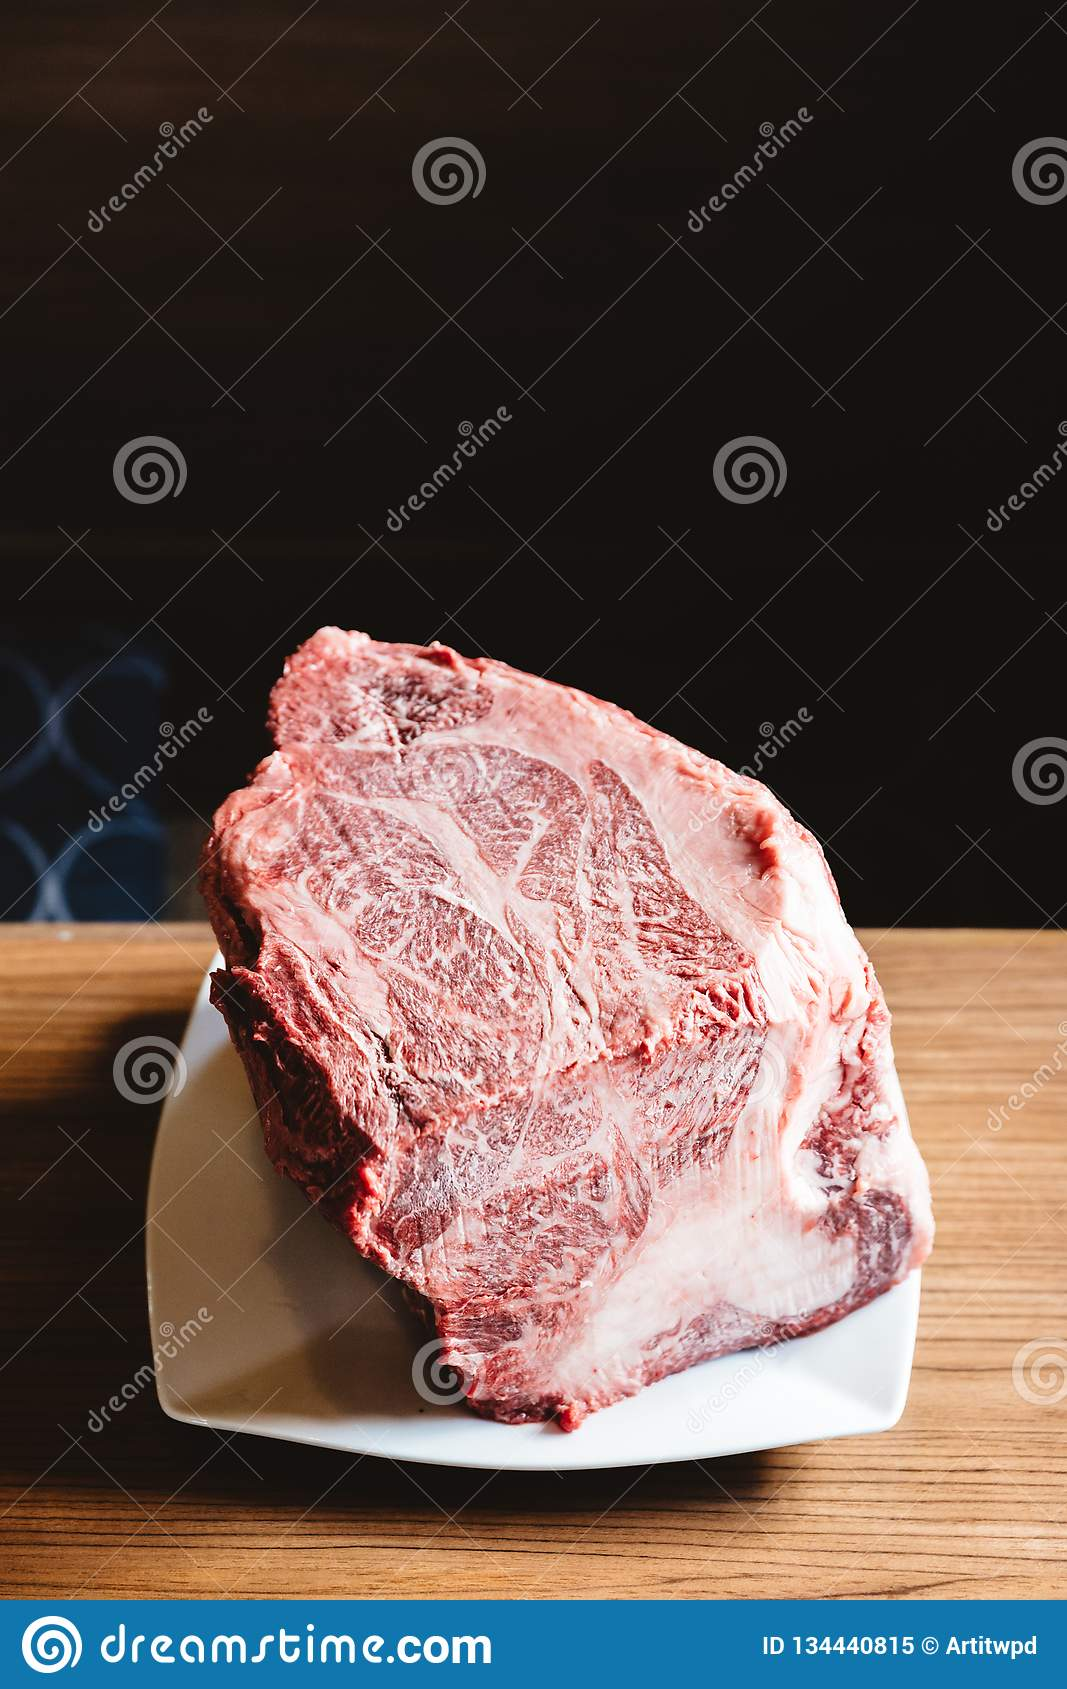 Rare authentic A5 Grade Japanese Wagyu beef Filet Mignon with high-marbled texture. Boneless and juicy for making Shabu and sushi